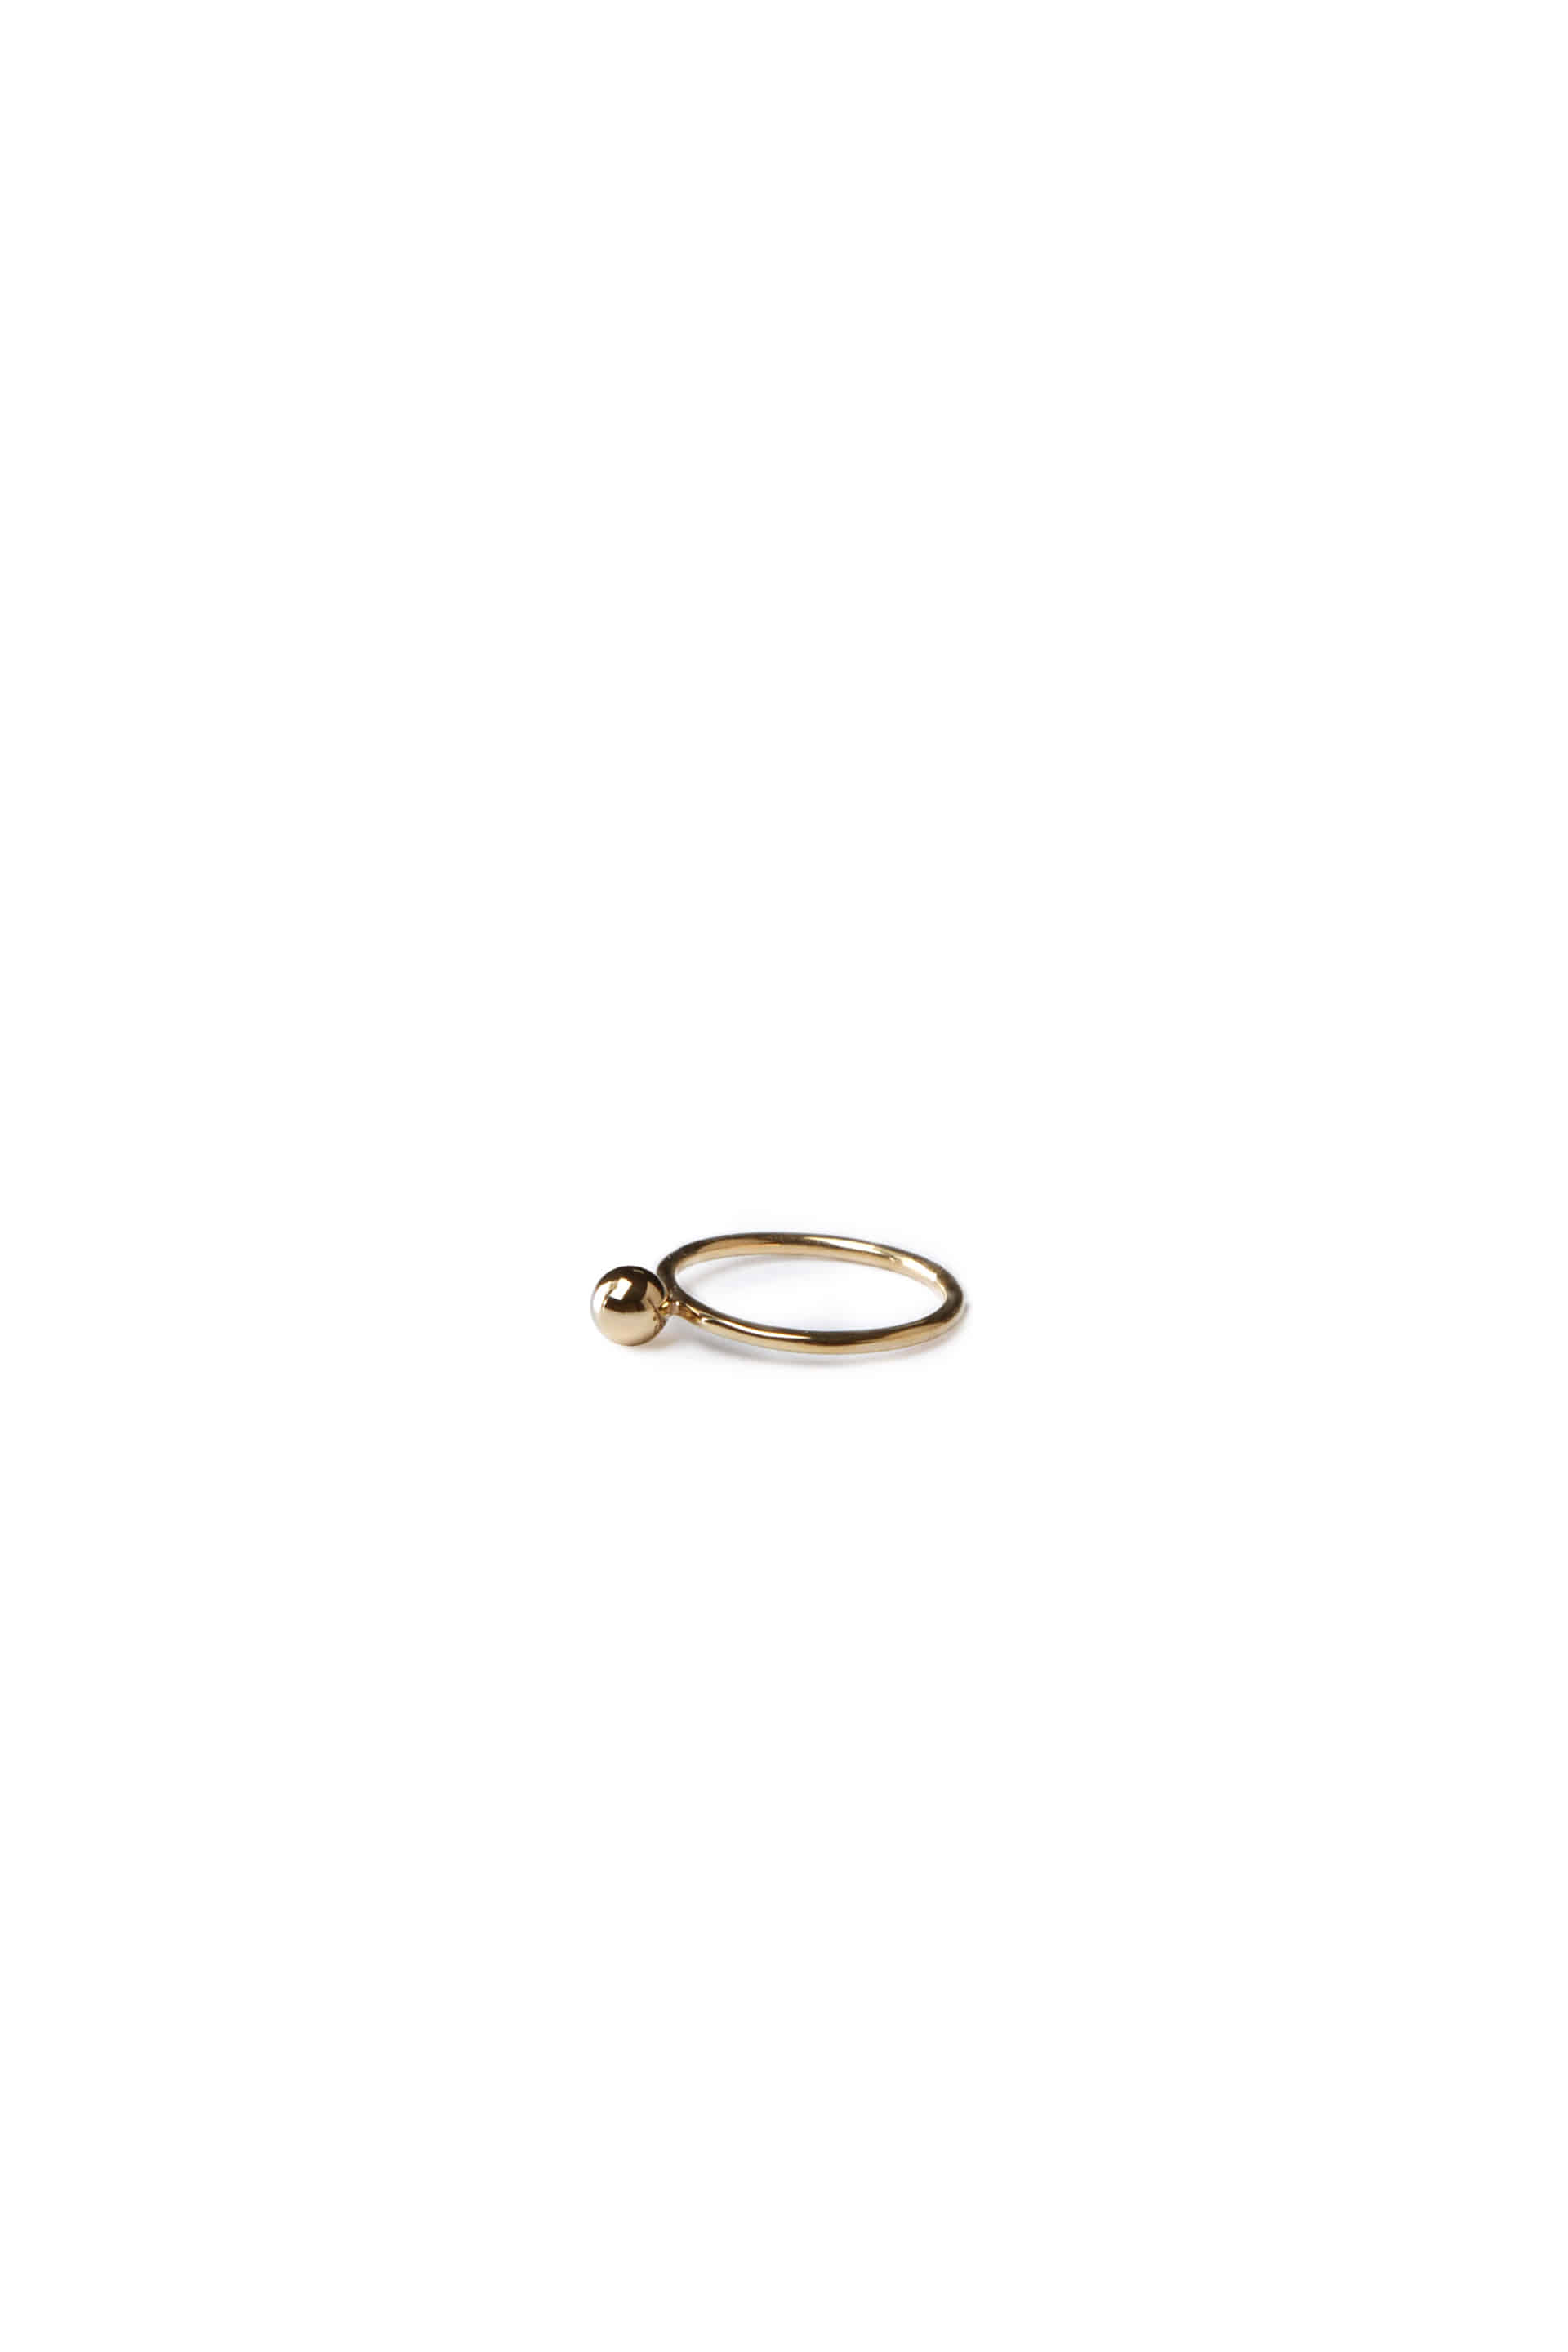 DAL RING Gold Small